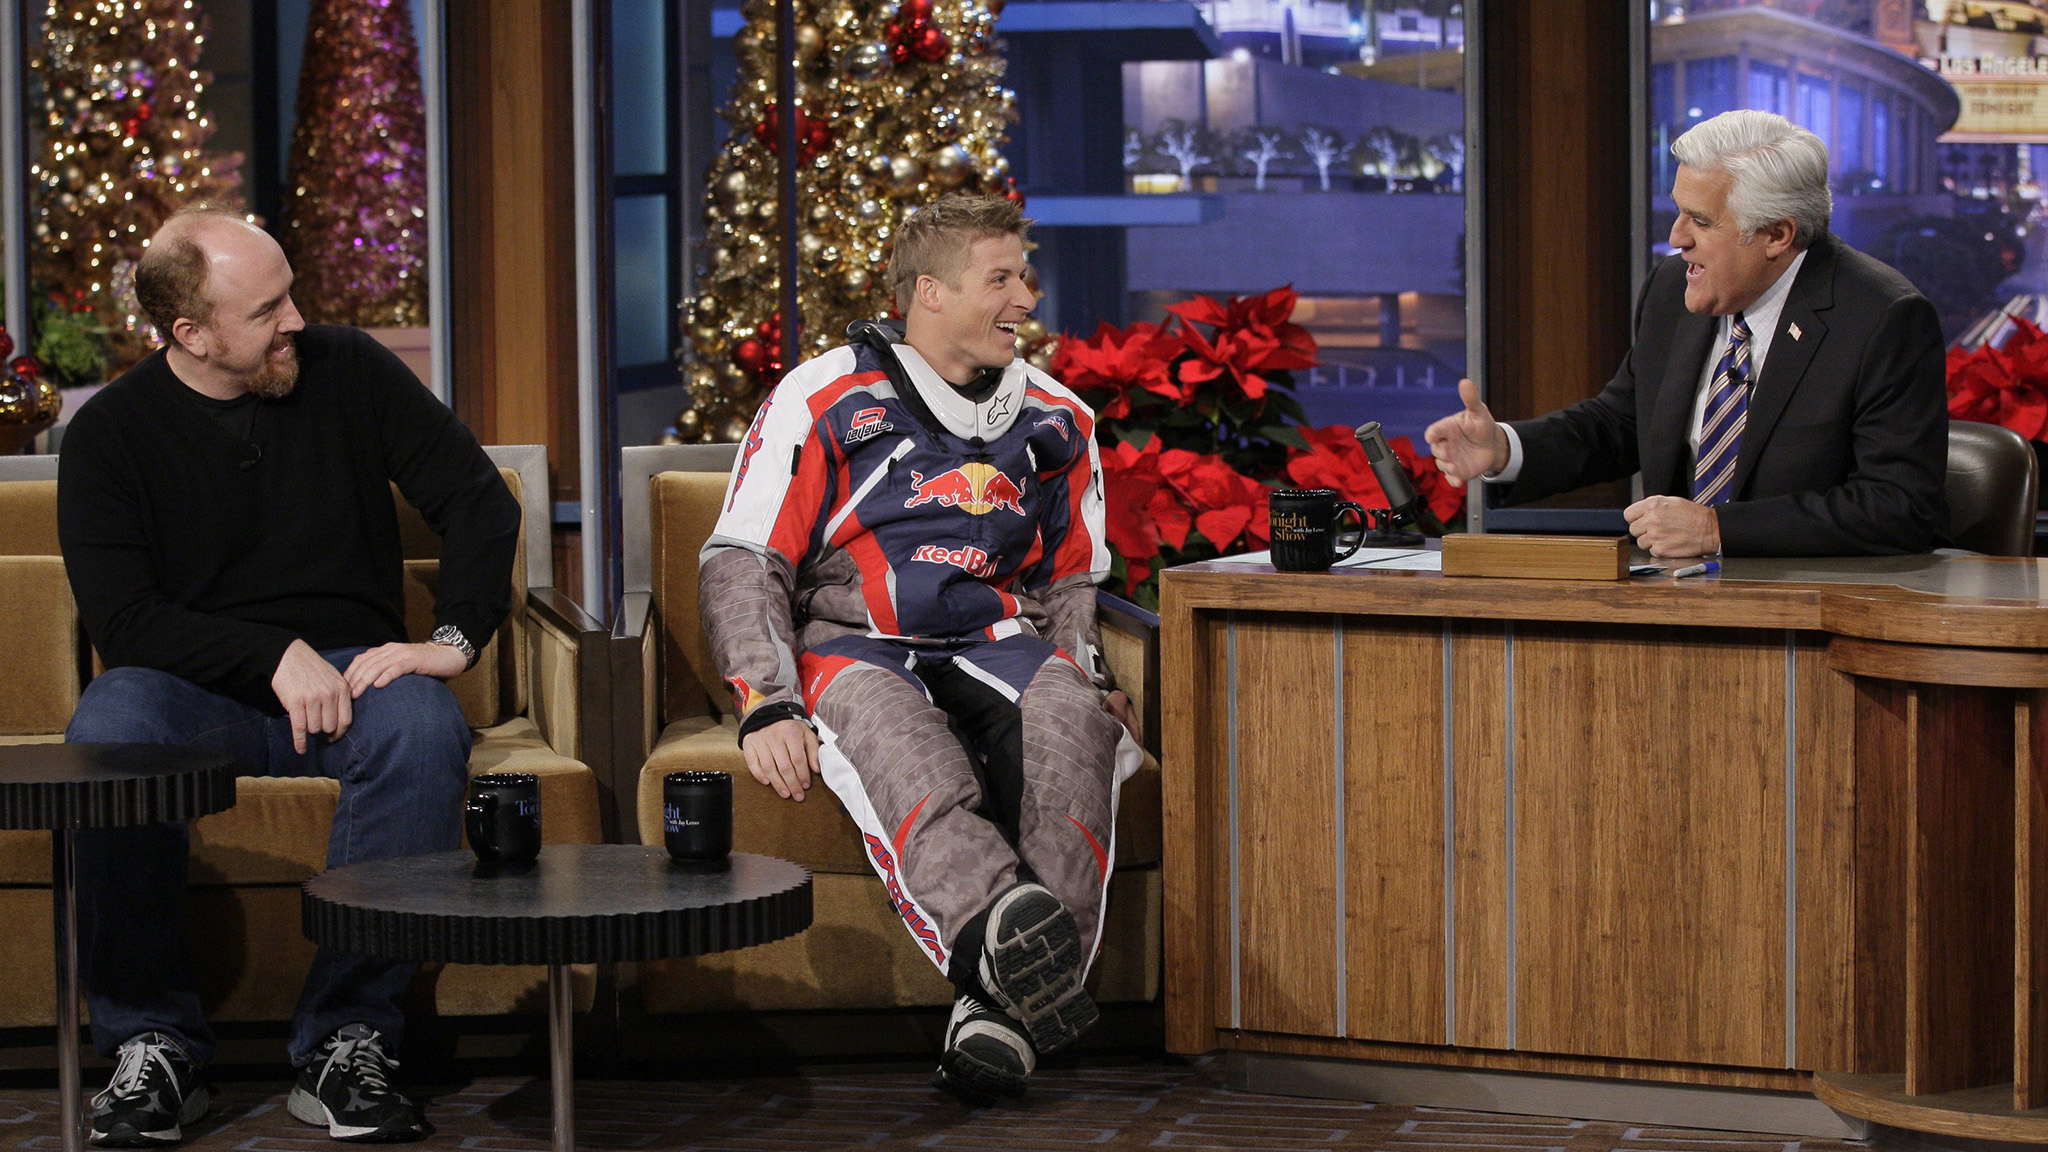 To promote his world record distance jump in 2011, LaVallee appeared on The Tonight Show with Jay Leno, alongside comedian Louis C.K.